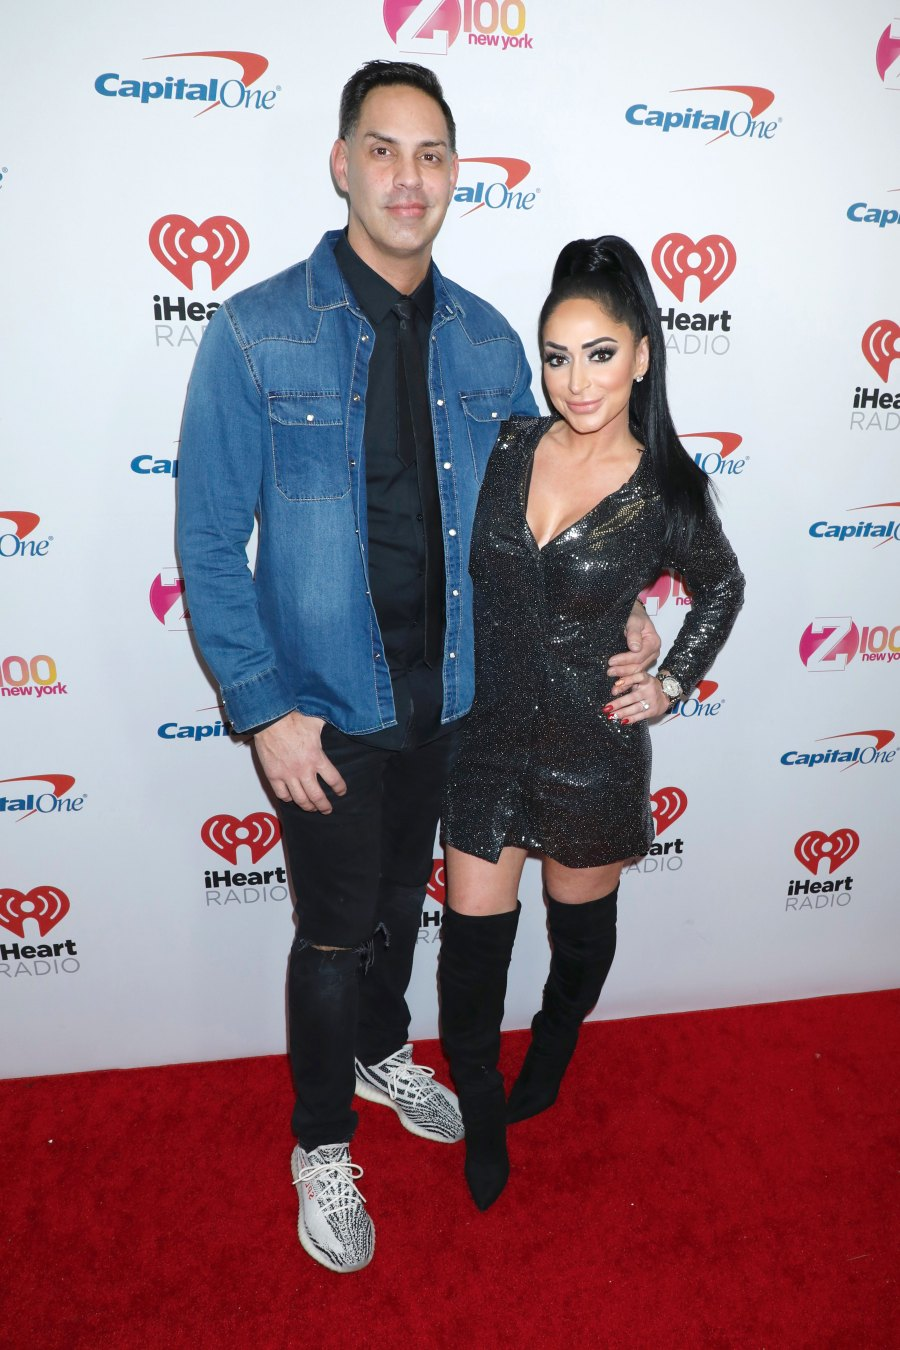 Teresa Giudice Says Her Family Is 'Still Deciding' Their Holiday Plans — Plus, More Stars at Jingle Ball